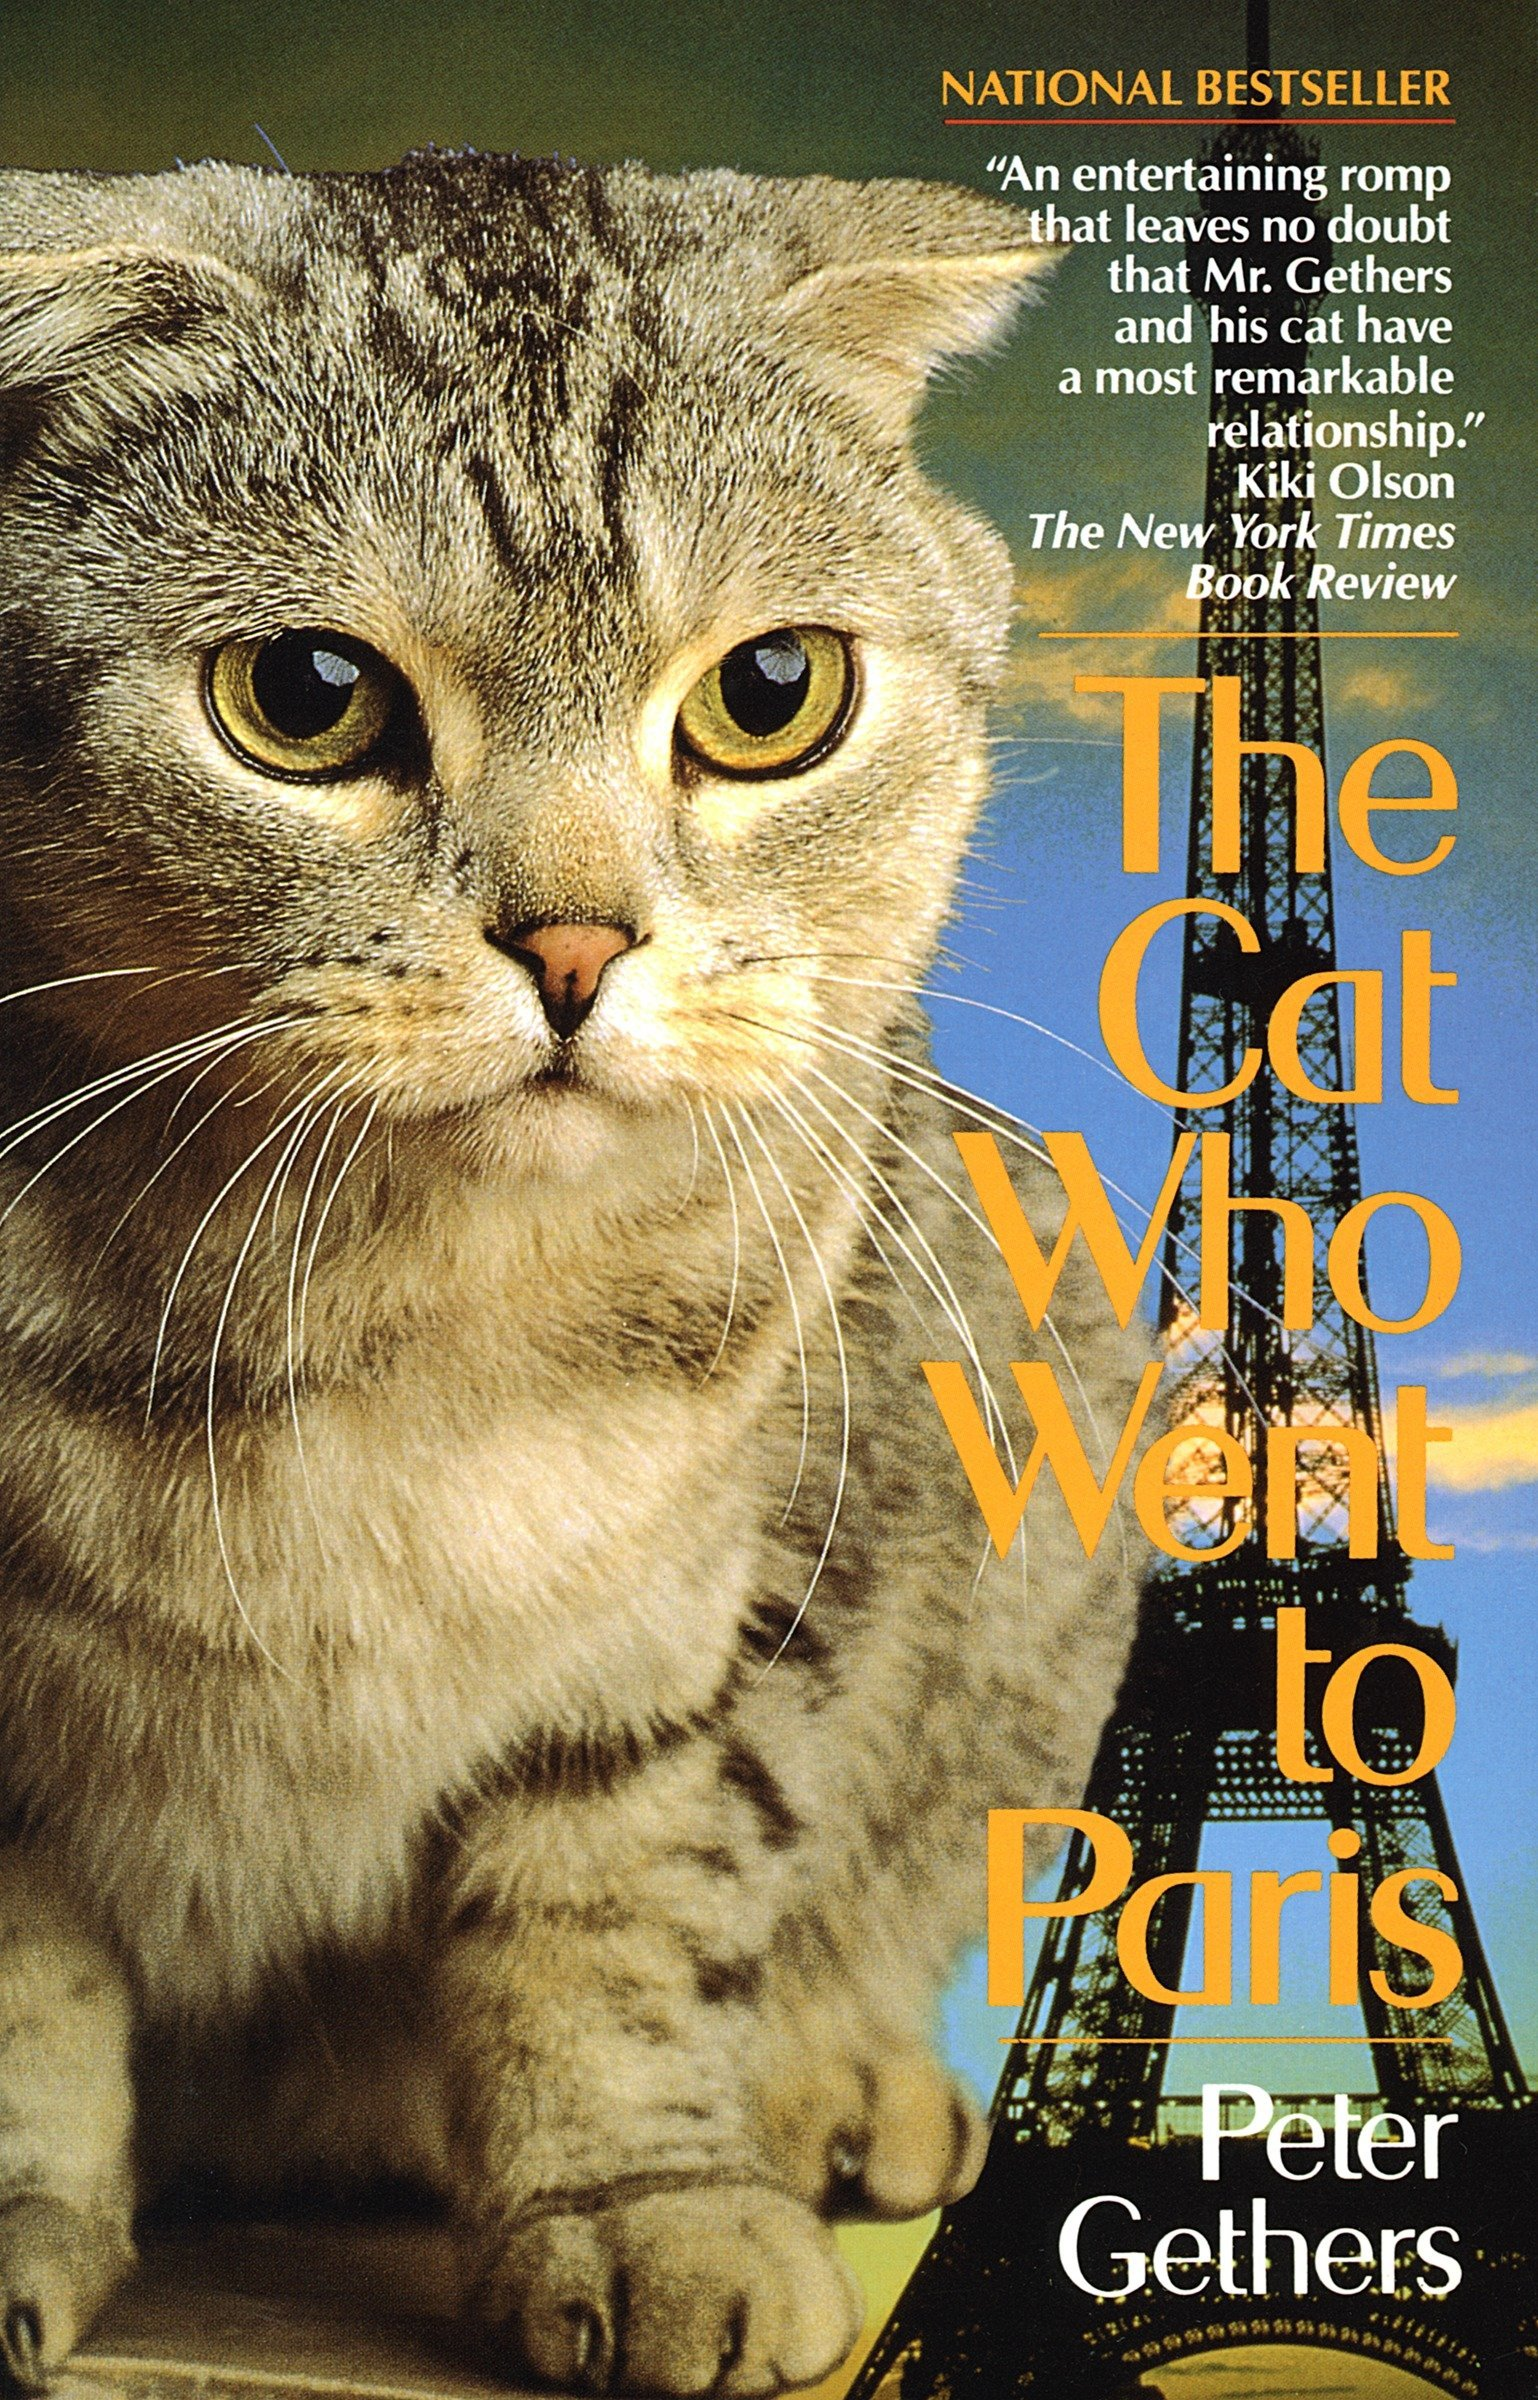 The Cat Who Went To Paris (Norton the Cat) by Peter Gethers